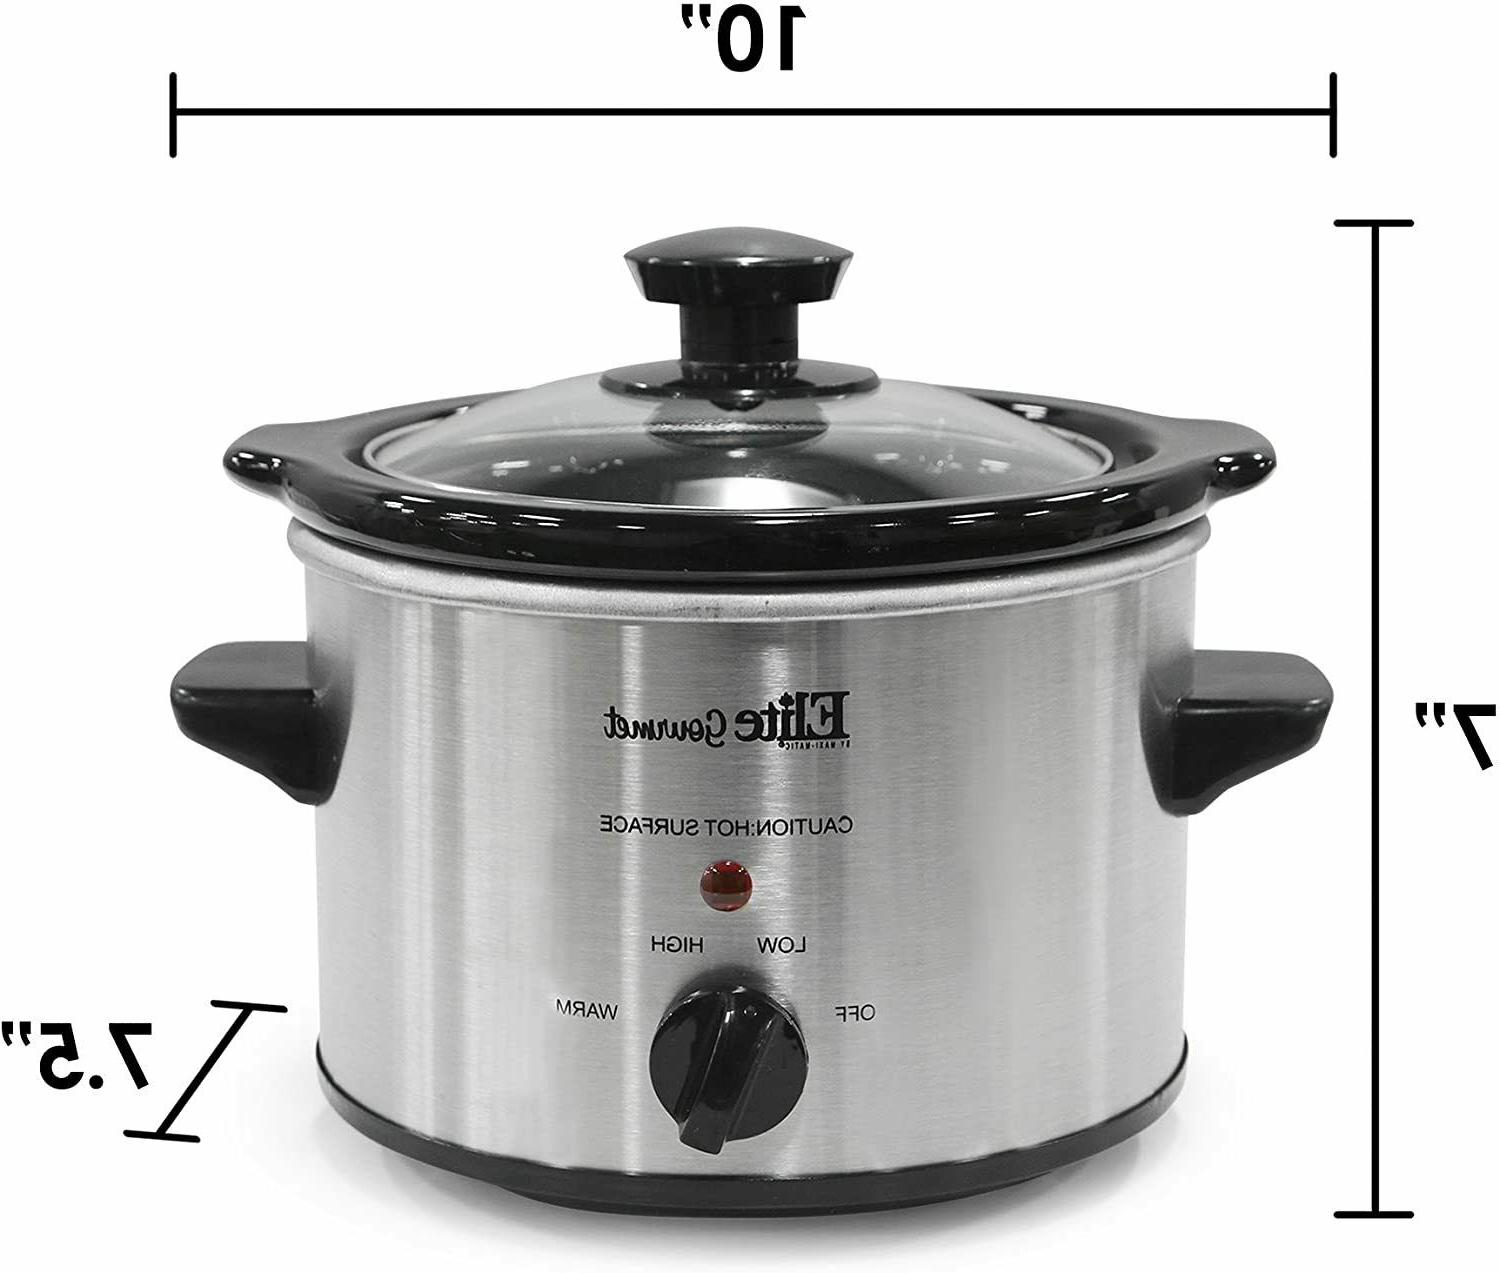 5Small Slow Stainless Steel Crock Pot